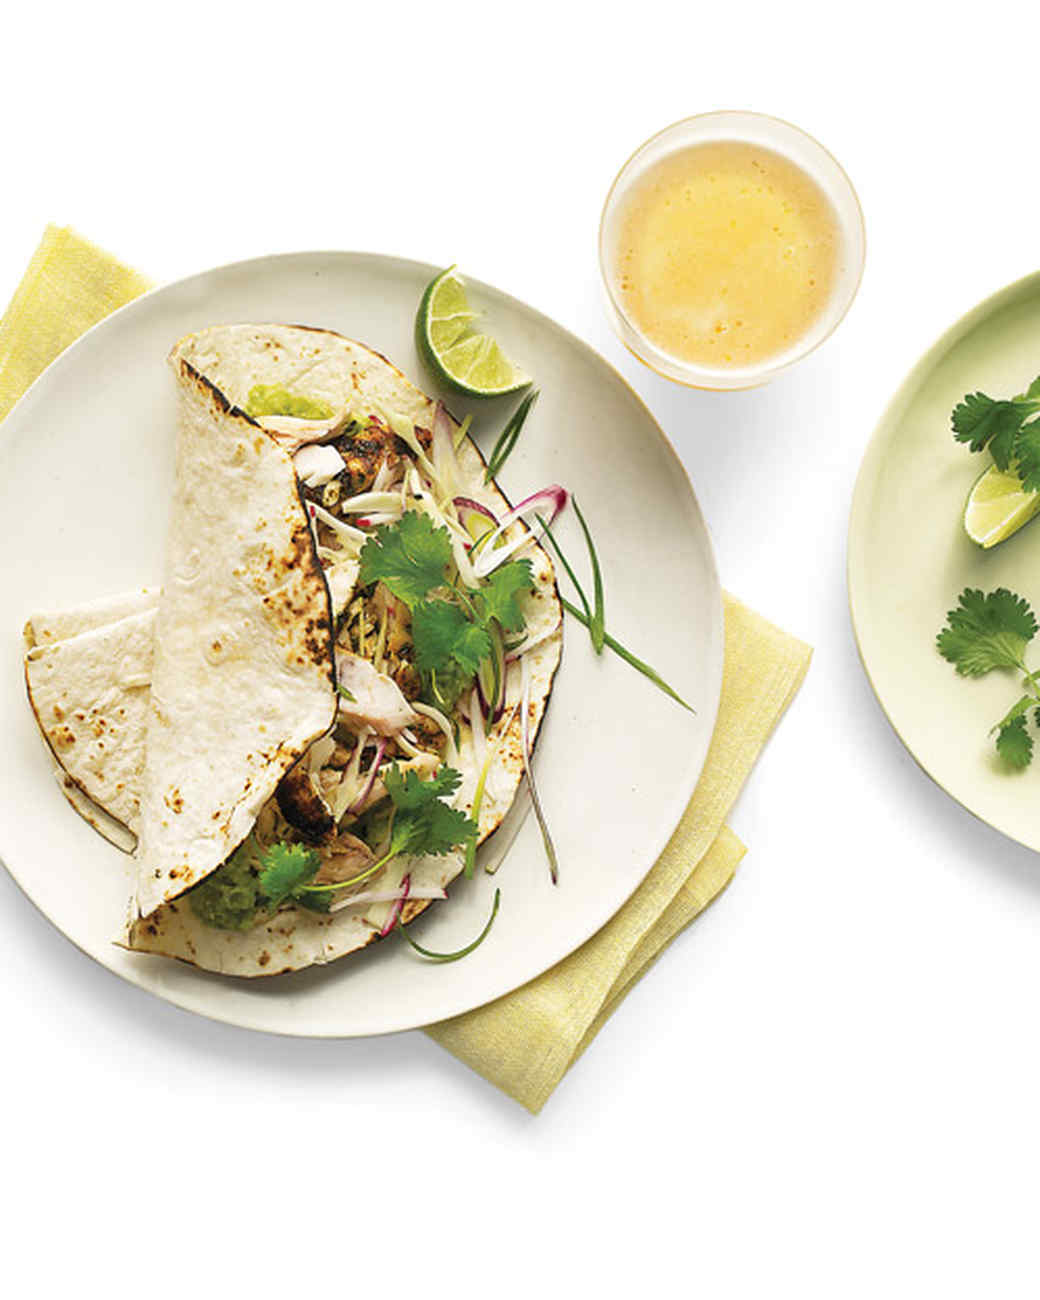 Grilled fish tacos with radish cabbage slaw recipe for Grilled fish taco recipe with cabbage slaw